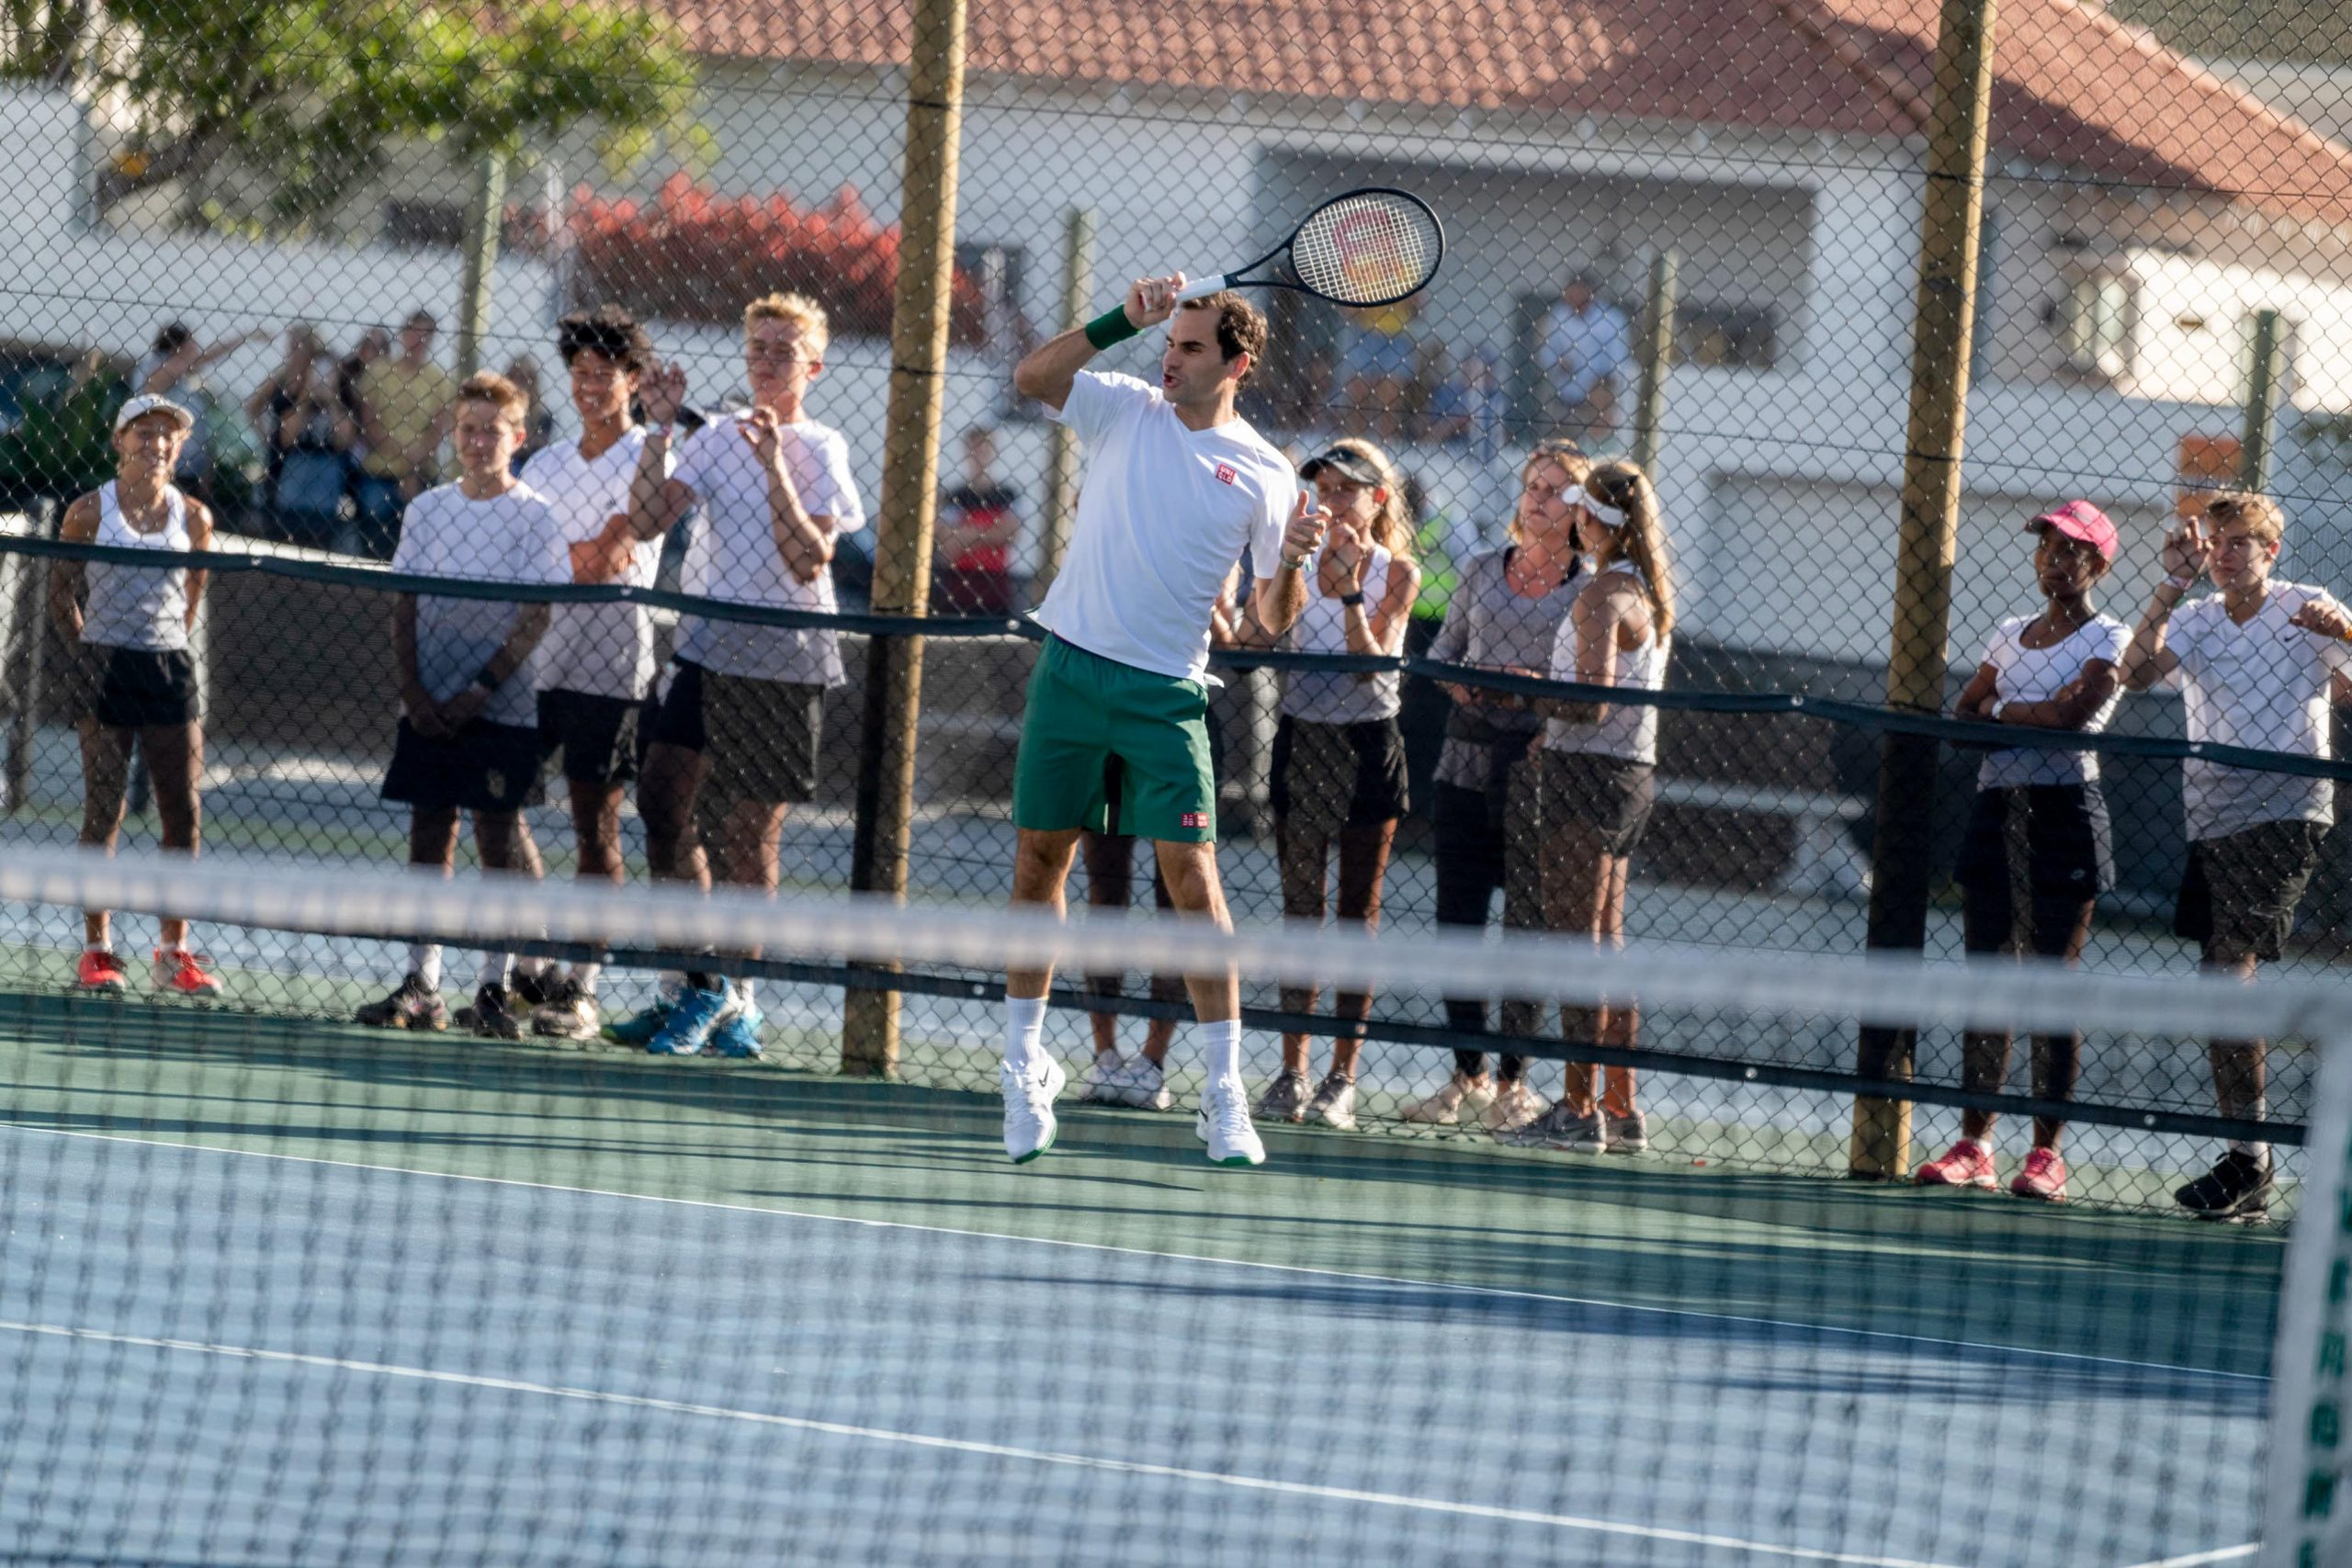 6 February 2020: Young players watch as Roger Federer plays a shot during an event at the Anthony Harris Tennis Academy ahead of Match in Africa 6. (Photograph by Ihsaan Haffejee)